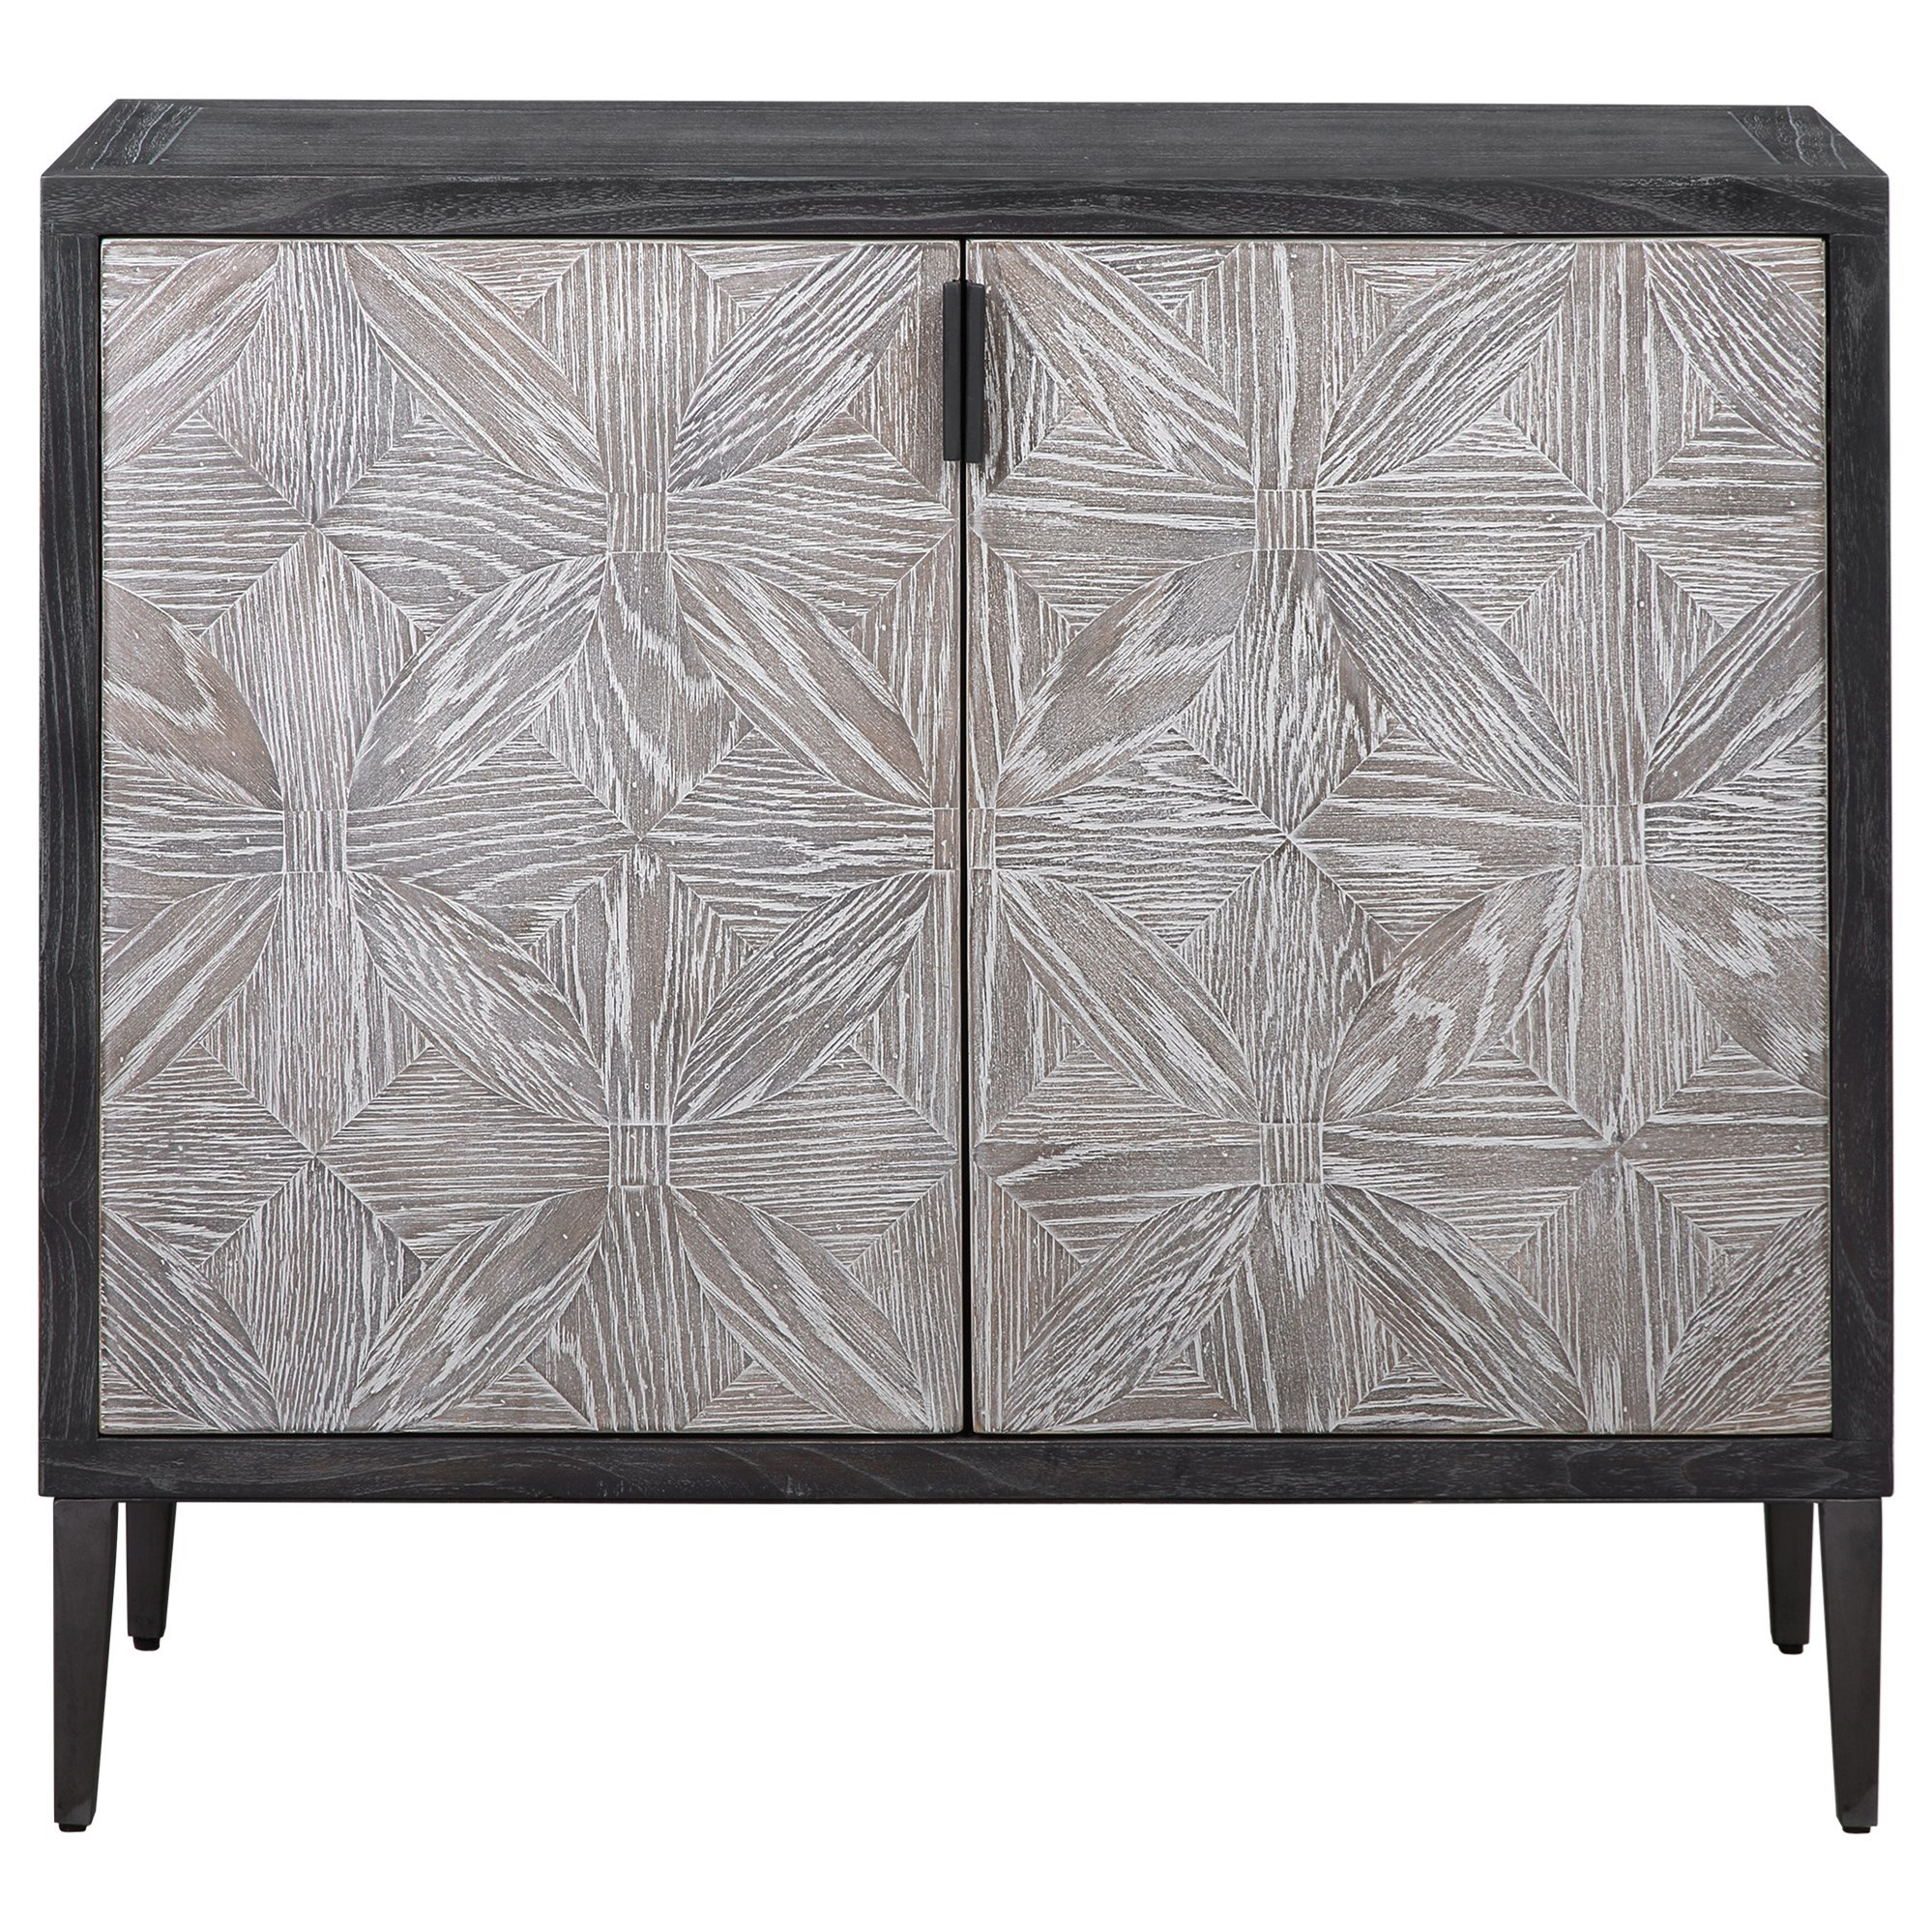 Accent Furniture - Chests Laurentia 2 Door Accent Cabinet by Uttermost at Dream Home Interiors